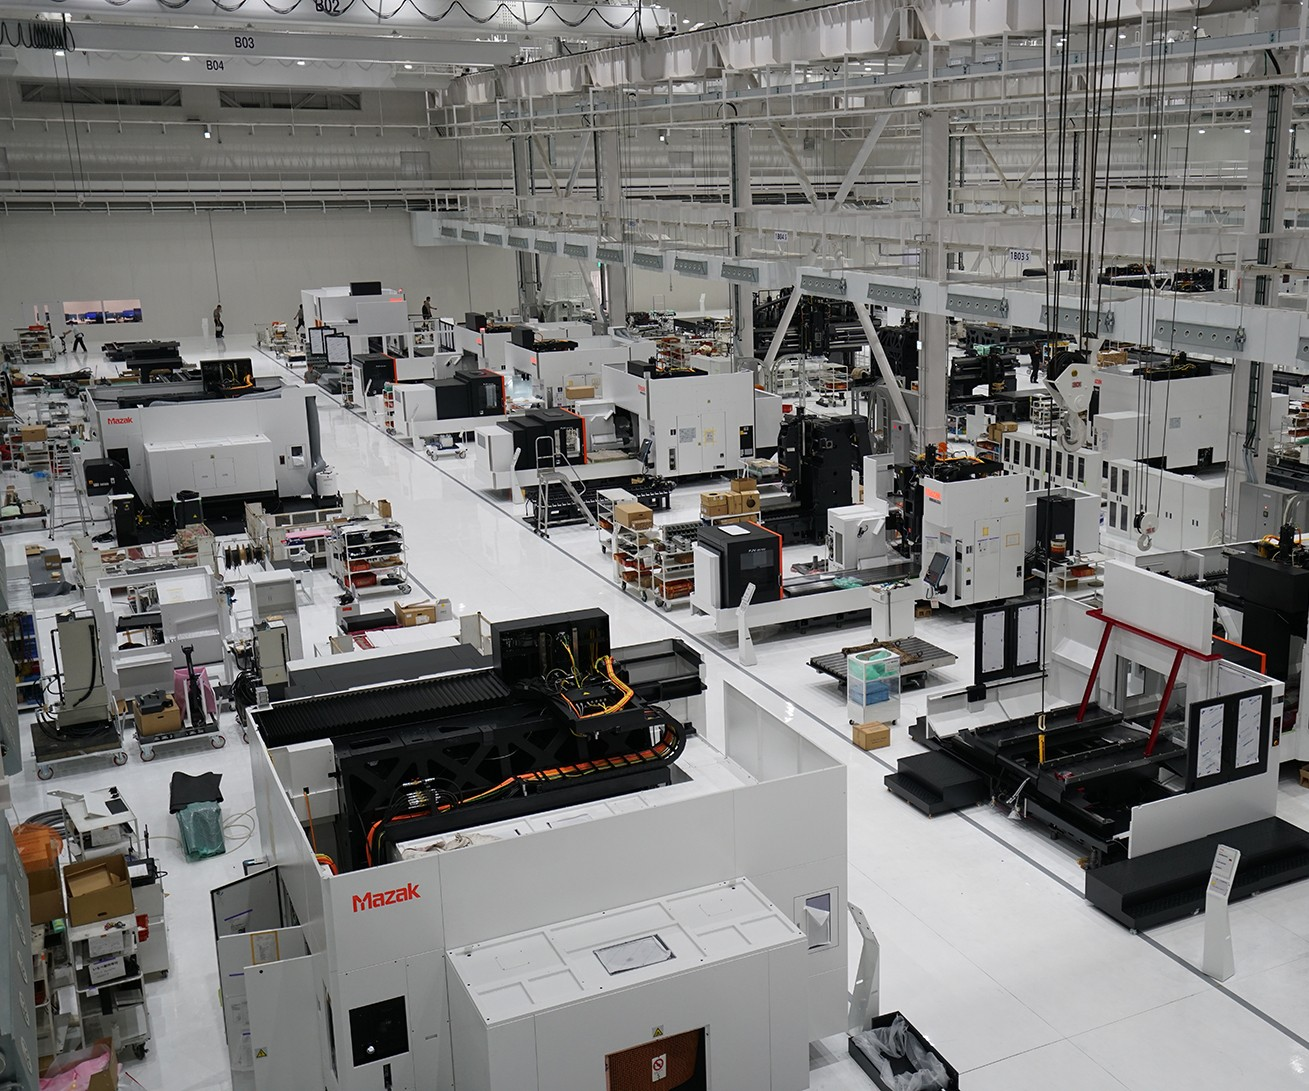 Mazak's new facility in Inabe City, Japan.